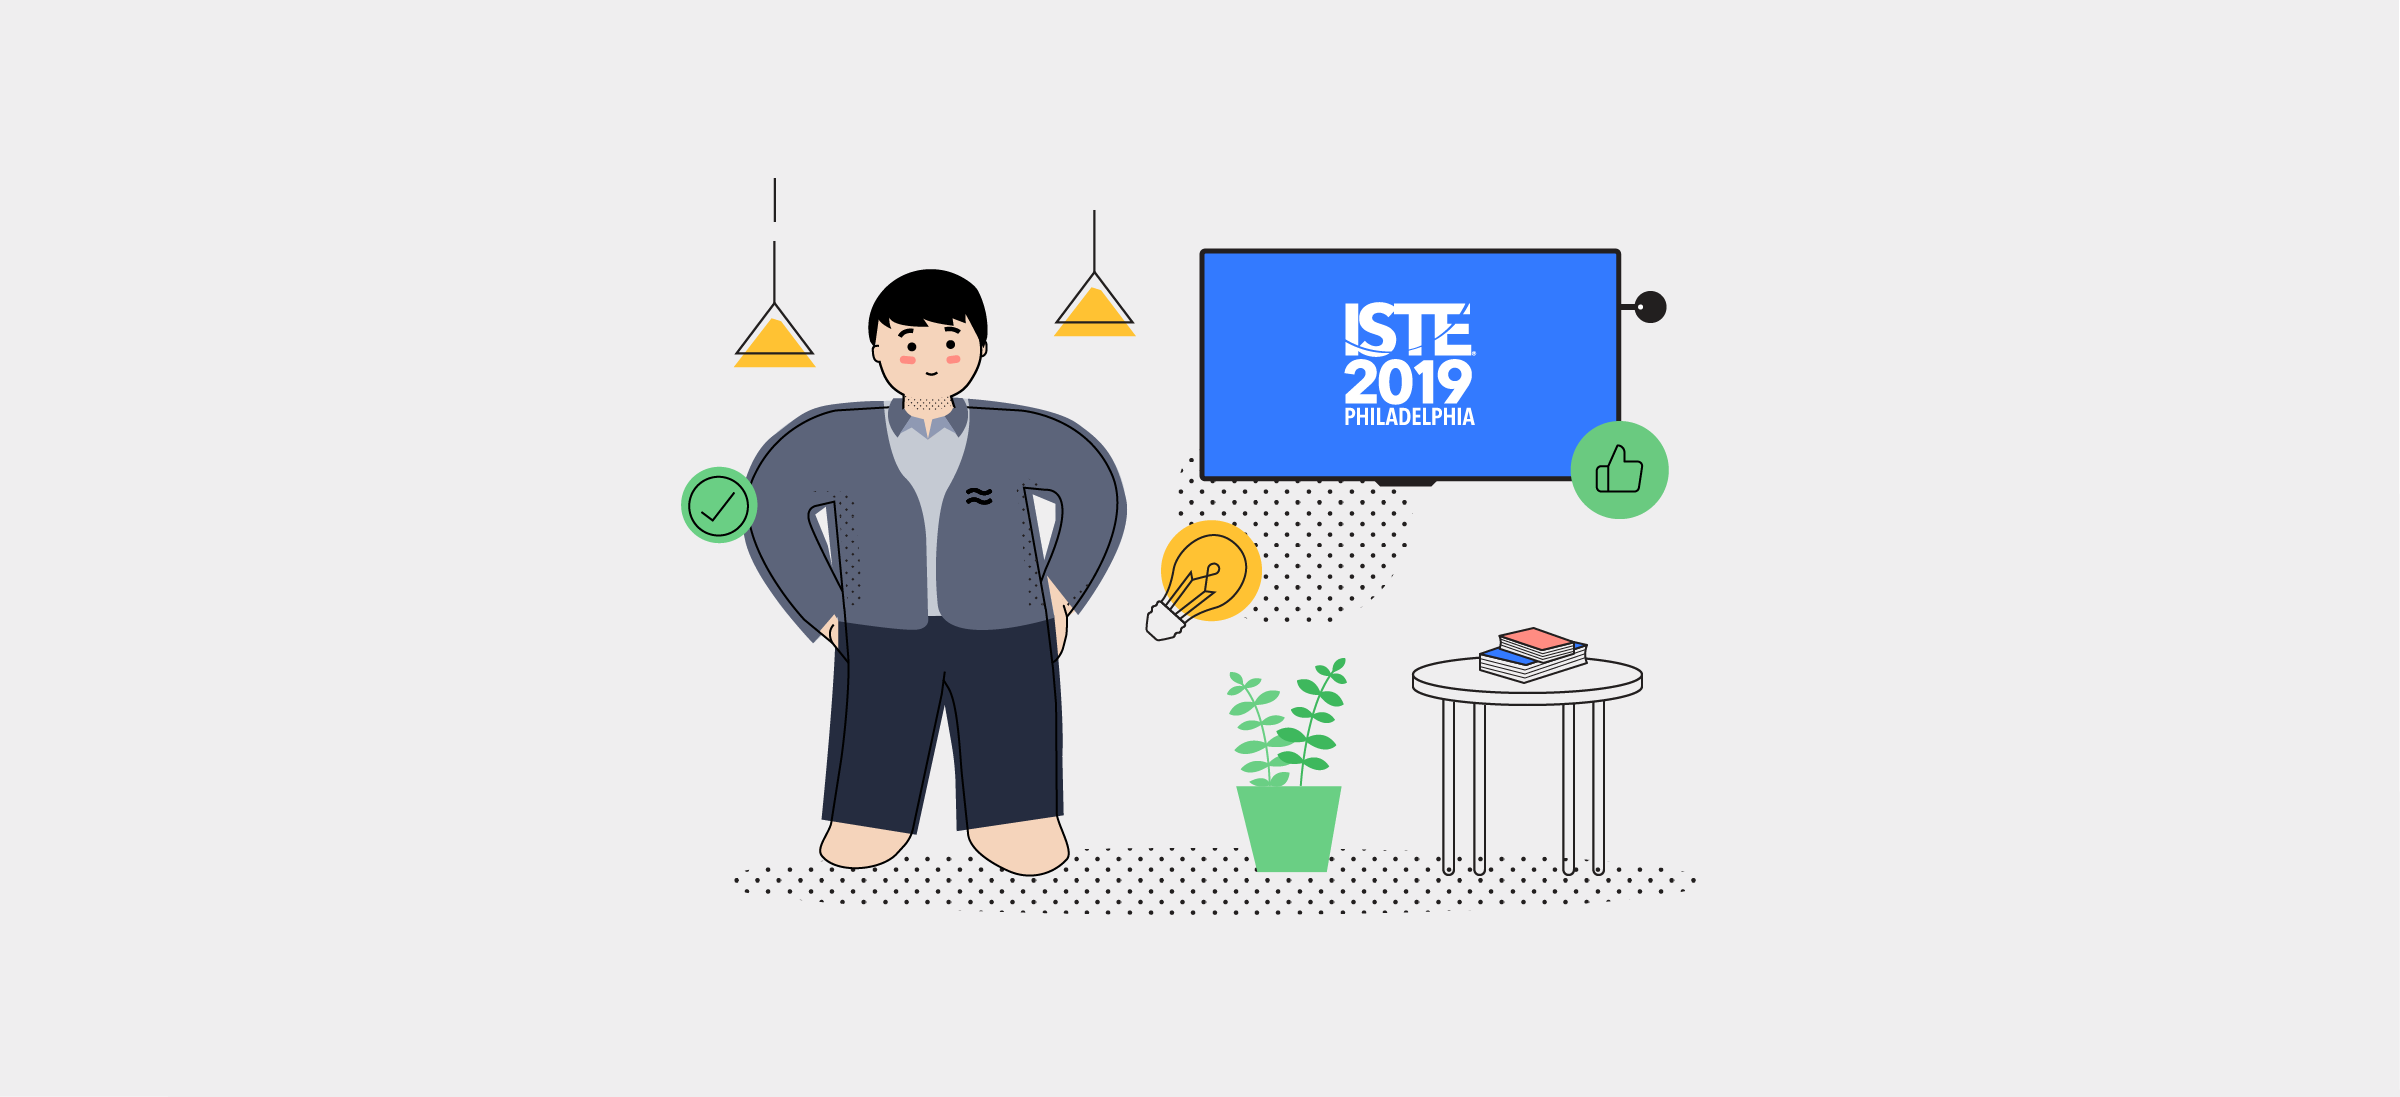 ISTE2019 recap: The no. 1 edtech conference